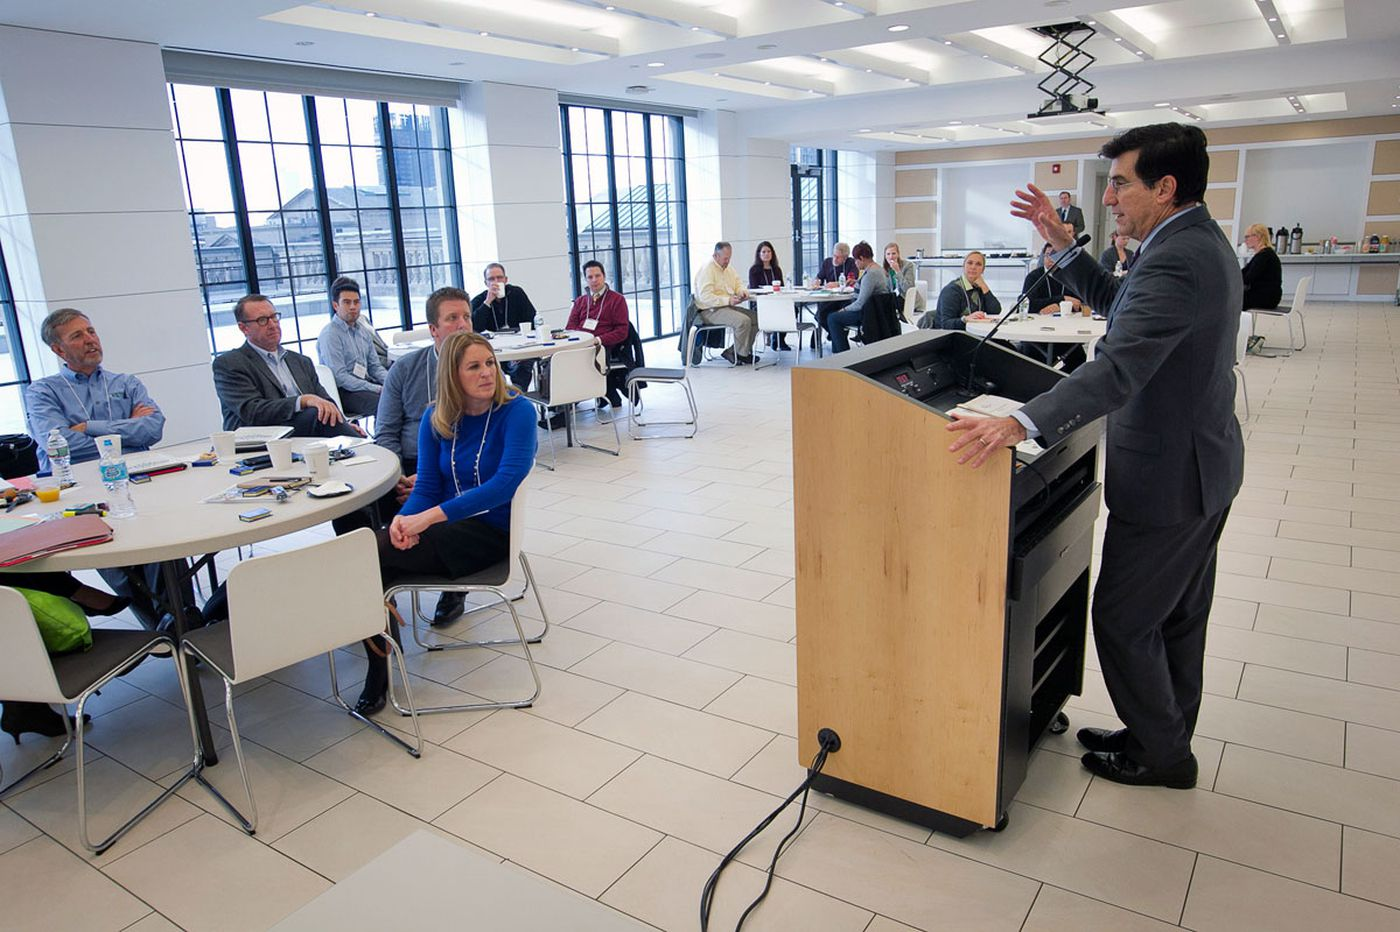 Mike DiBerardinis: From community activist to soon-to-be Phila. Managing Director